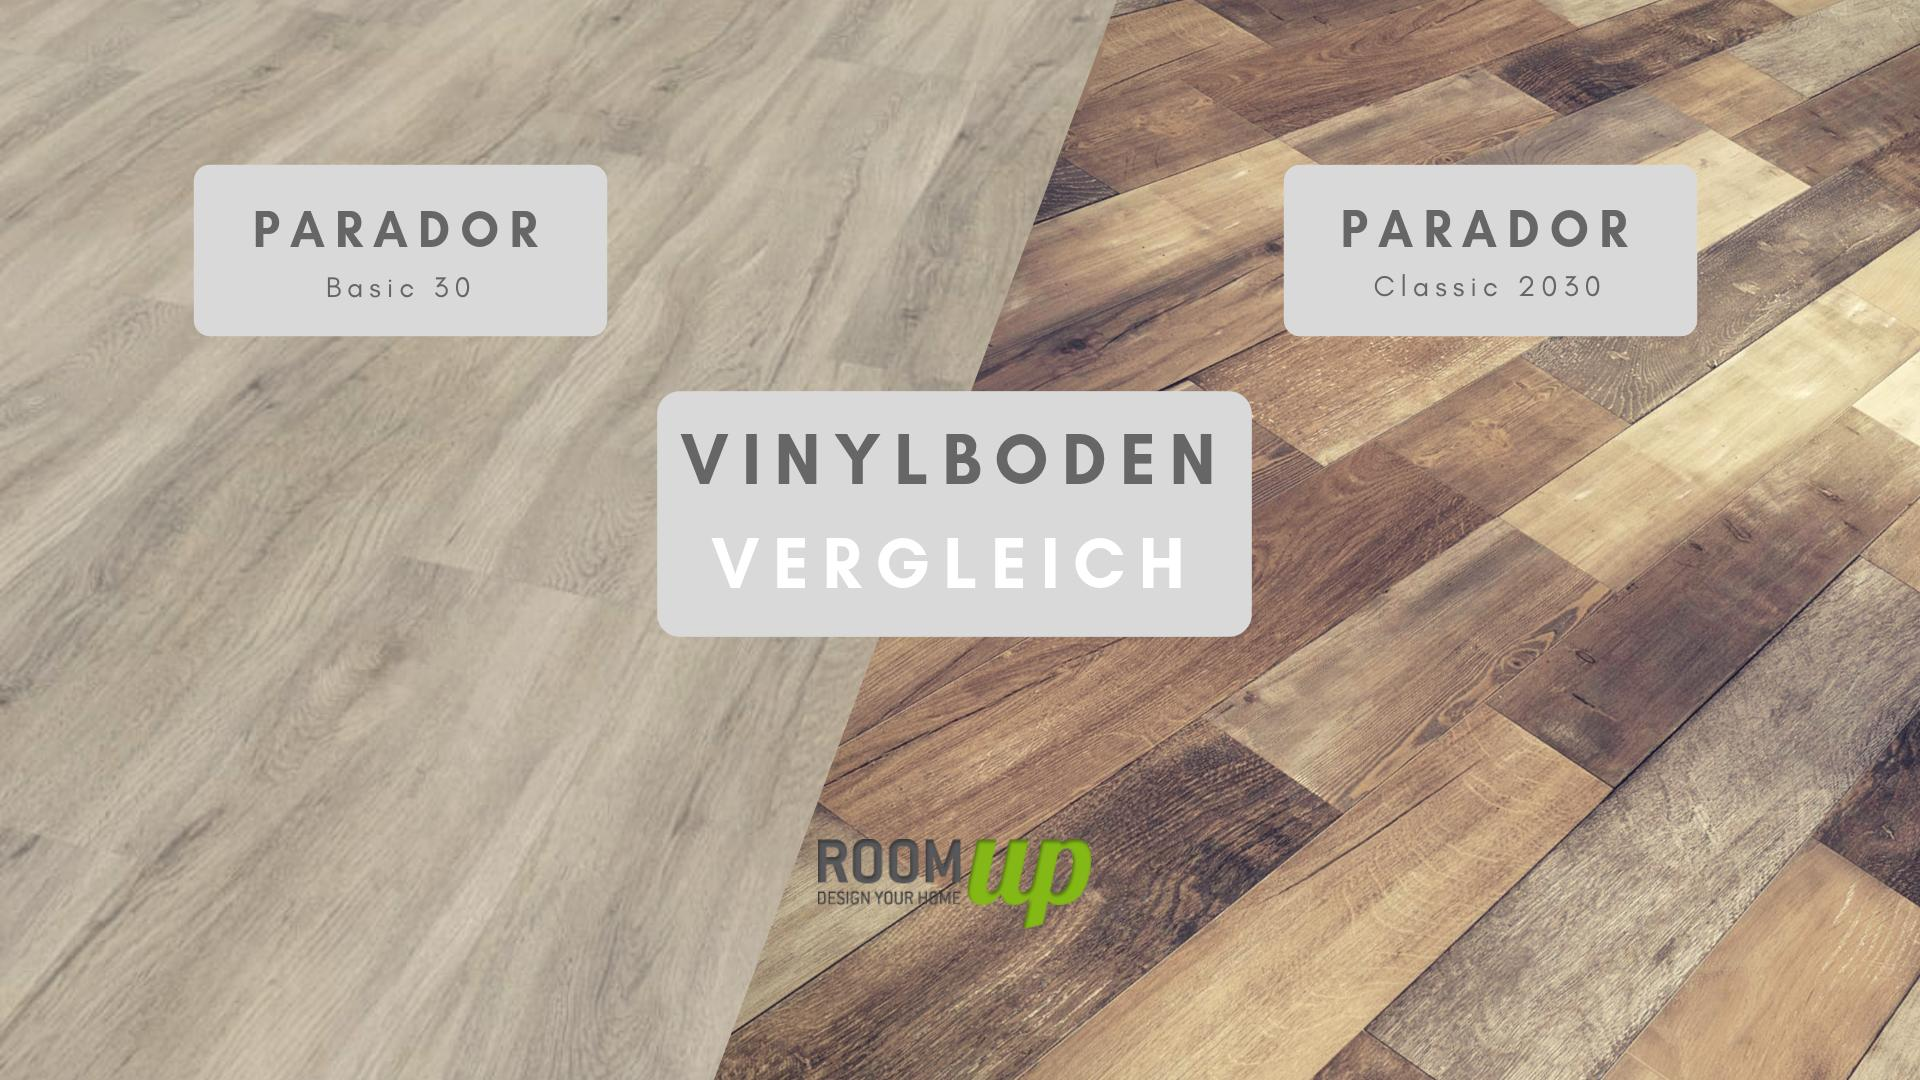 vinylboden laminat vergleich fabulous sortiment vinylbden with vinylboden laminat vergleich. Black Bedroom Furniture Sets. Home Design Ideas